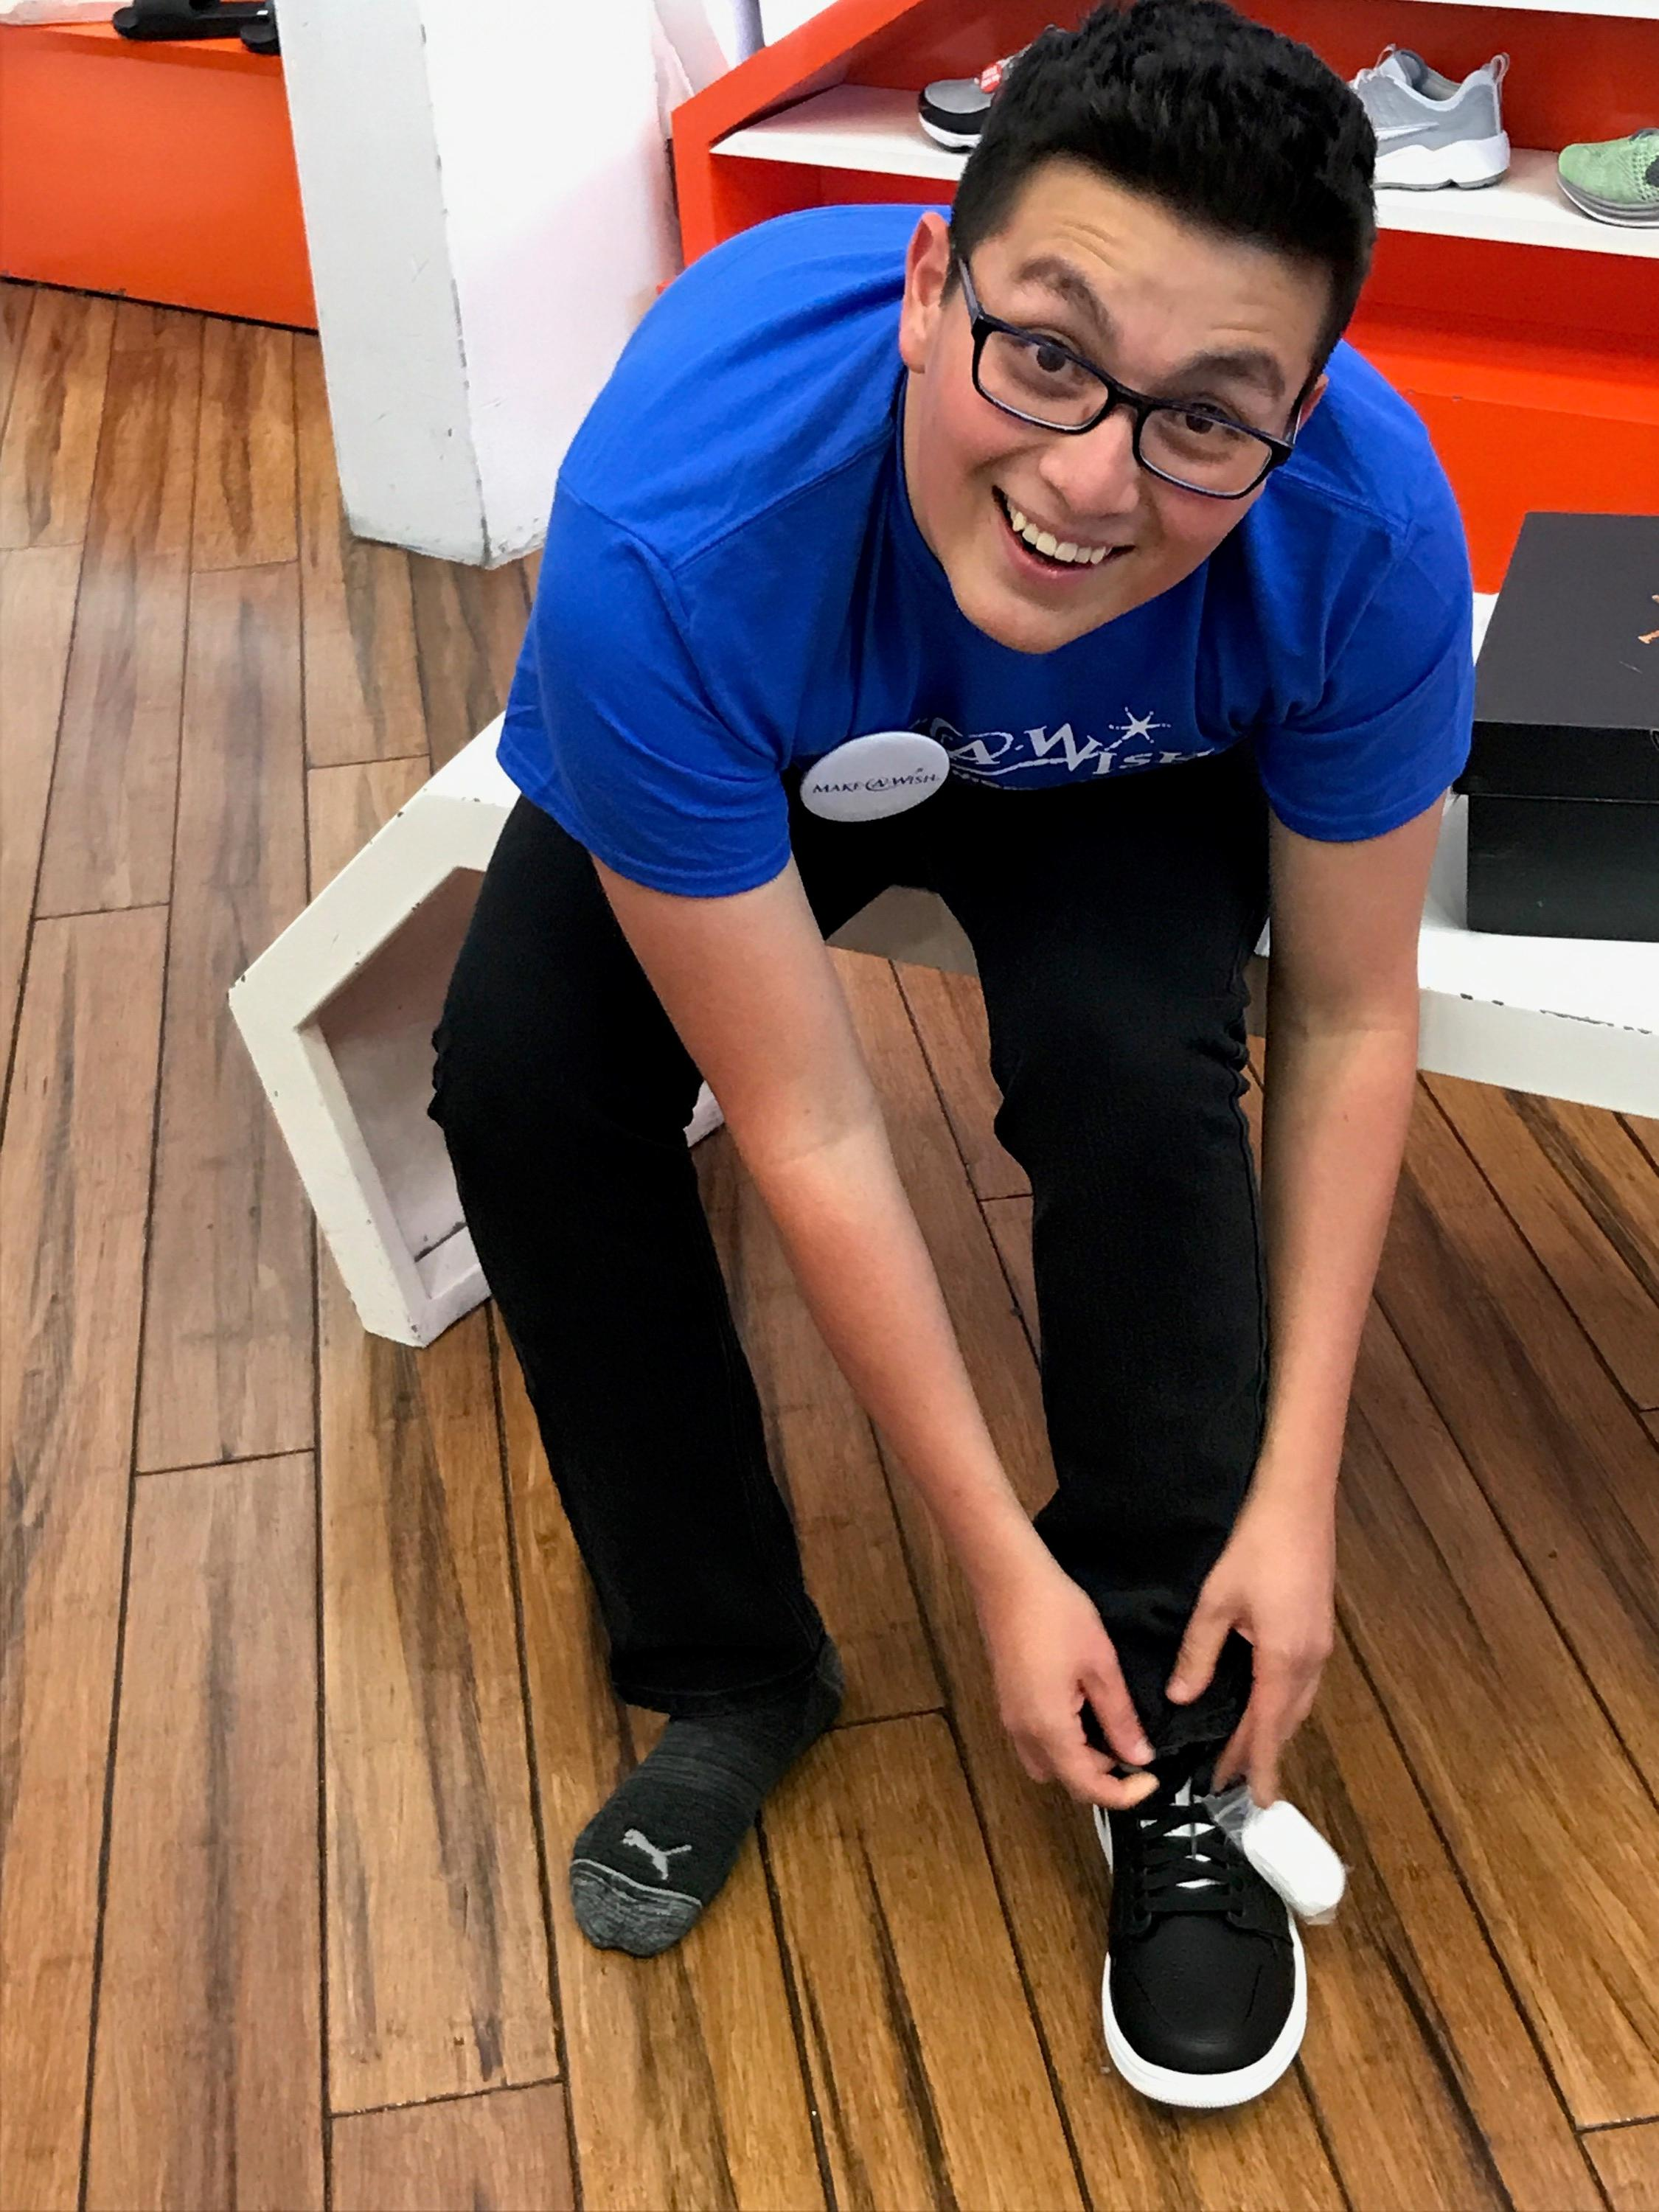 Jon trying on shoes{&amp;nbsp;}(Courtesy Make-A-Wish Foundation)<p></p>